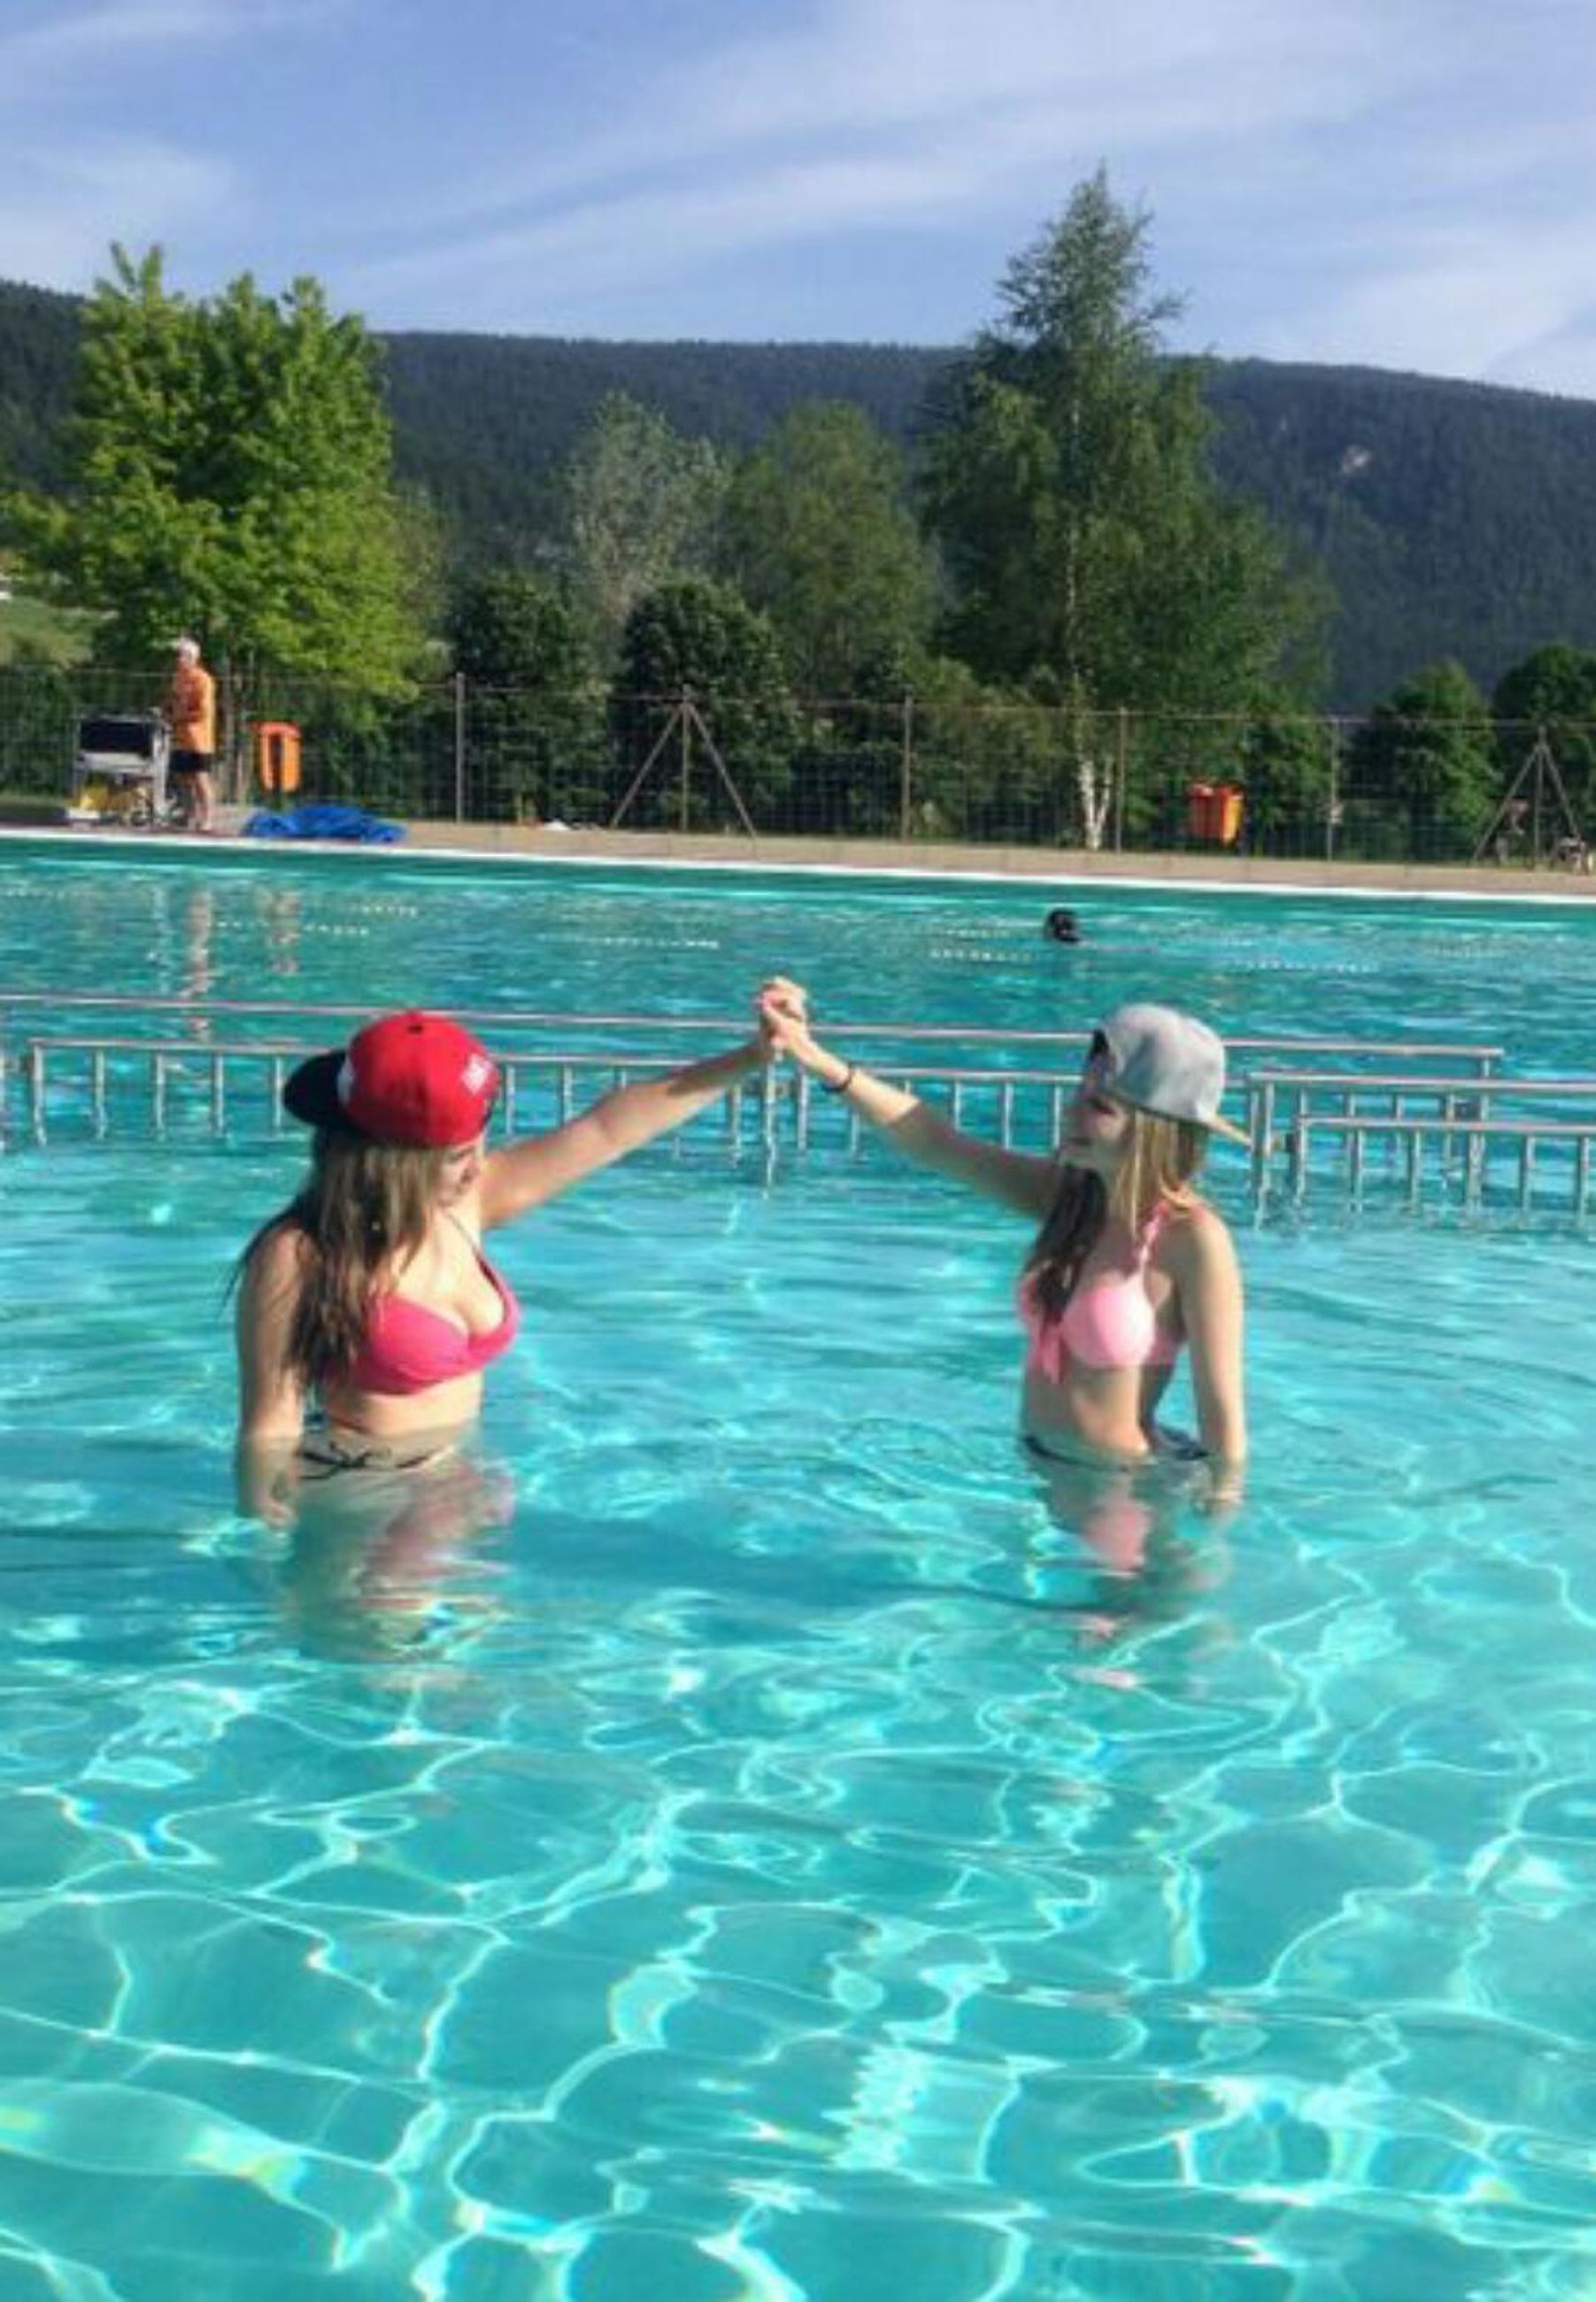 water, leisure activity, lifestyles, swimming pool, tree, waterfront, childhood, enjoyment, vacations, sky, swimming, person, full length, togetherness, fun, boys, girls, blue